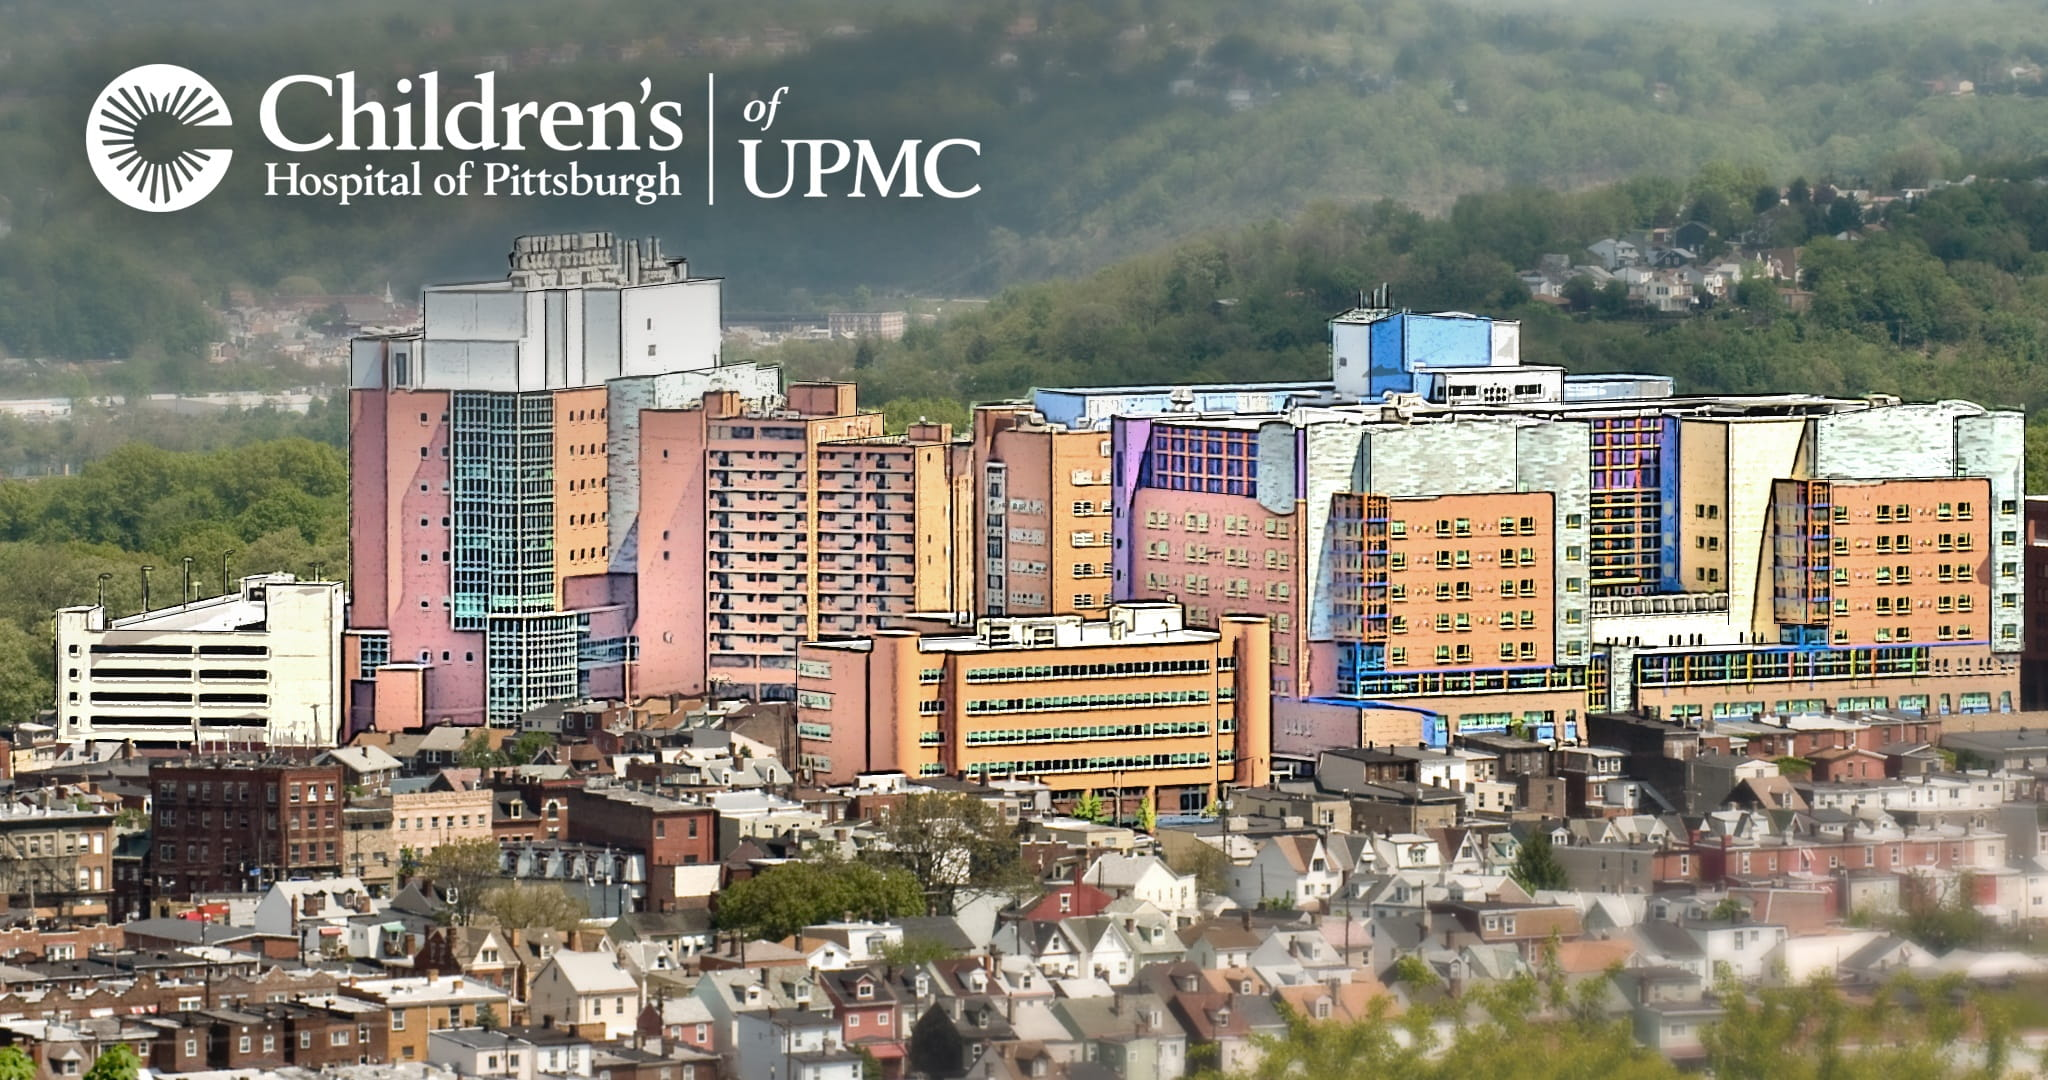 Children's Hospital of Pittsburgh of UPMC artist rendering